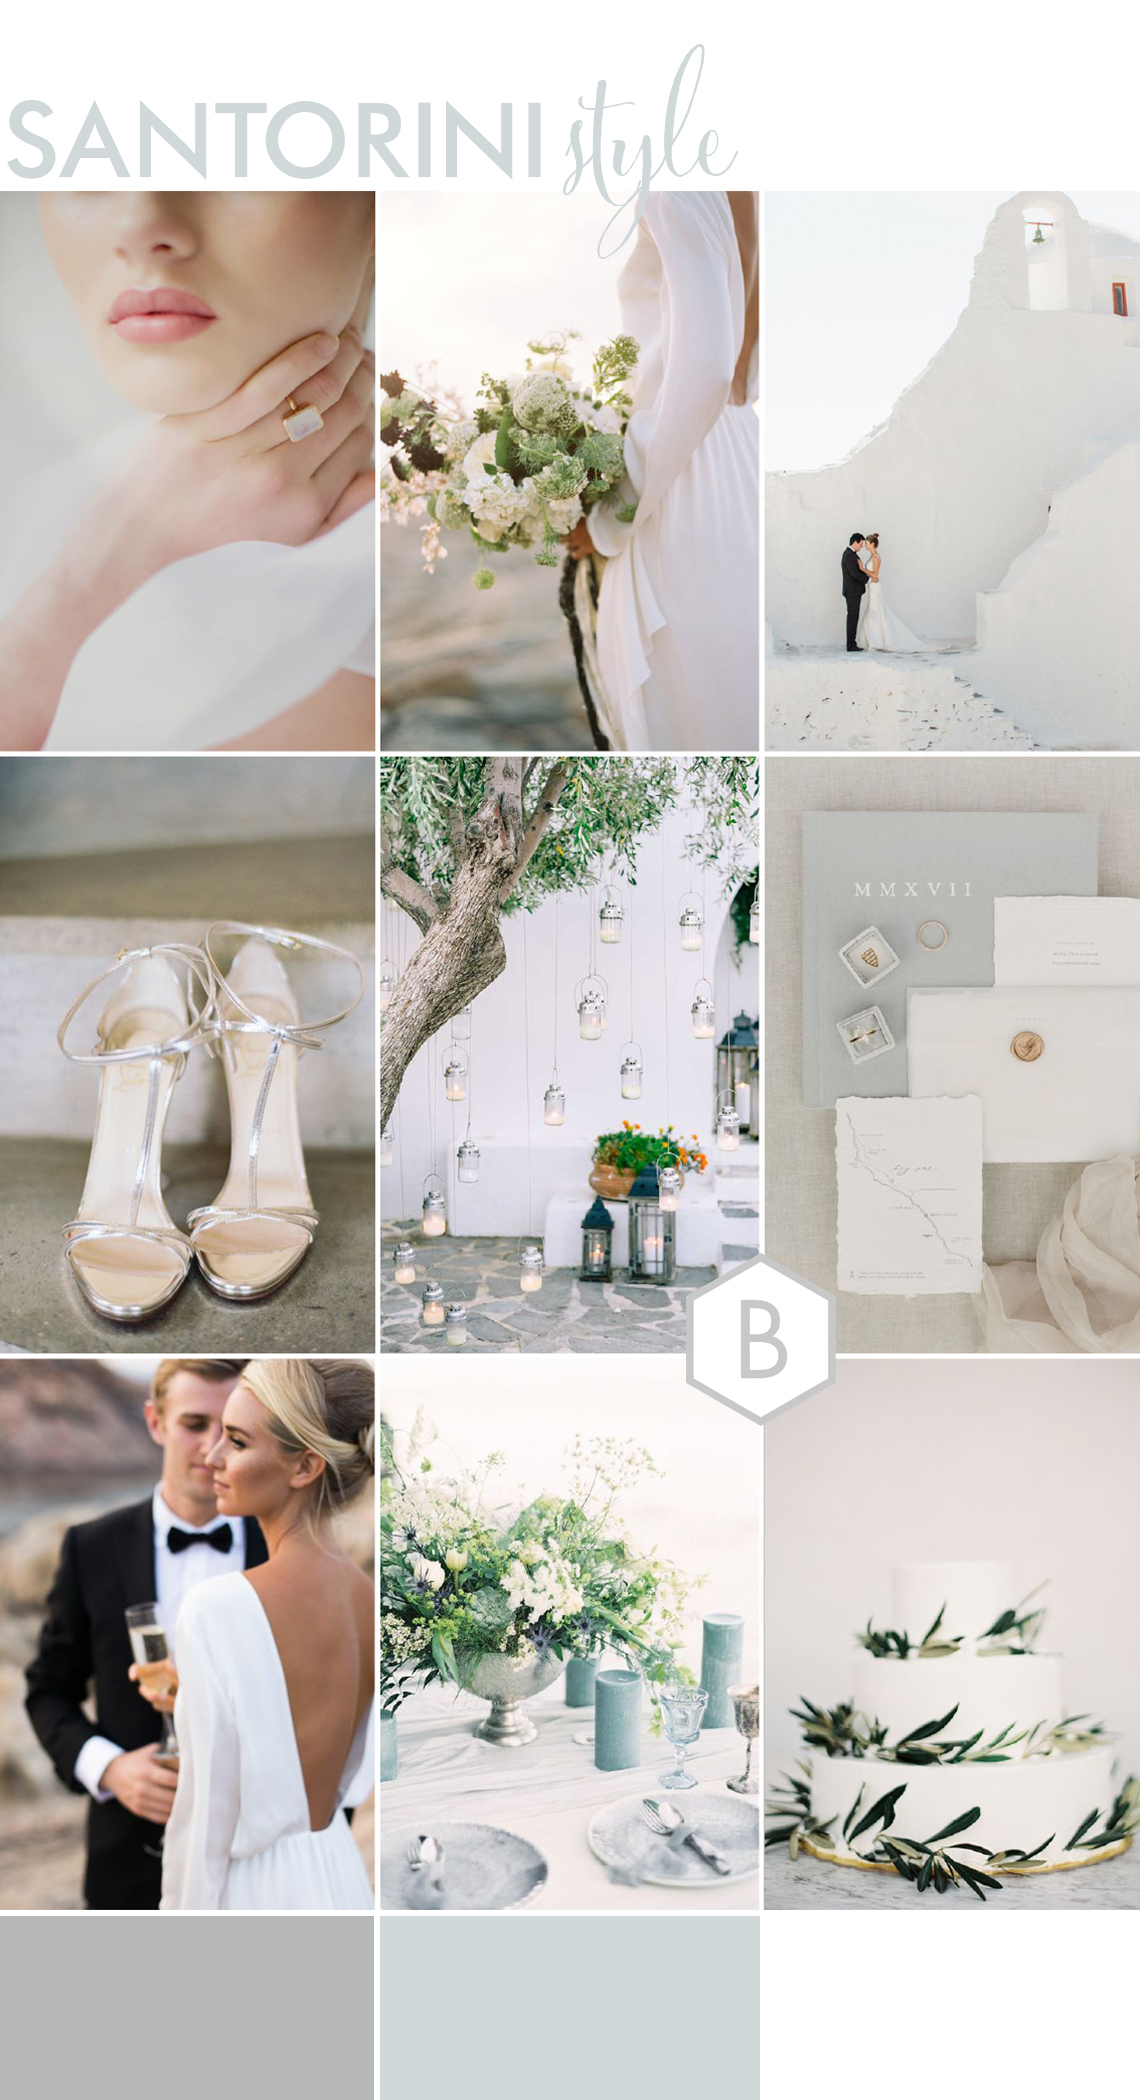 santorini wedding ideas with a white grey and blue palette